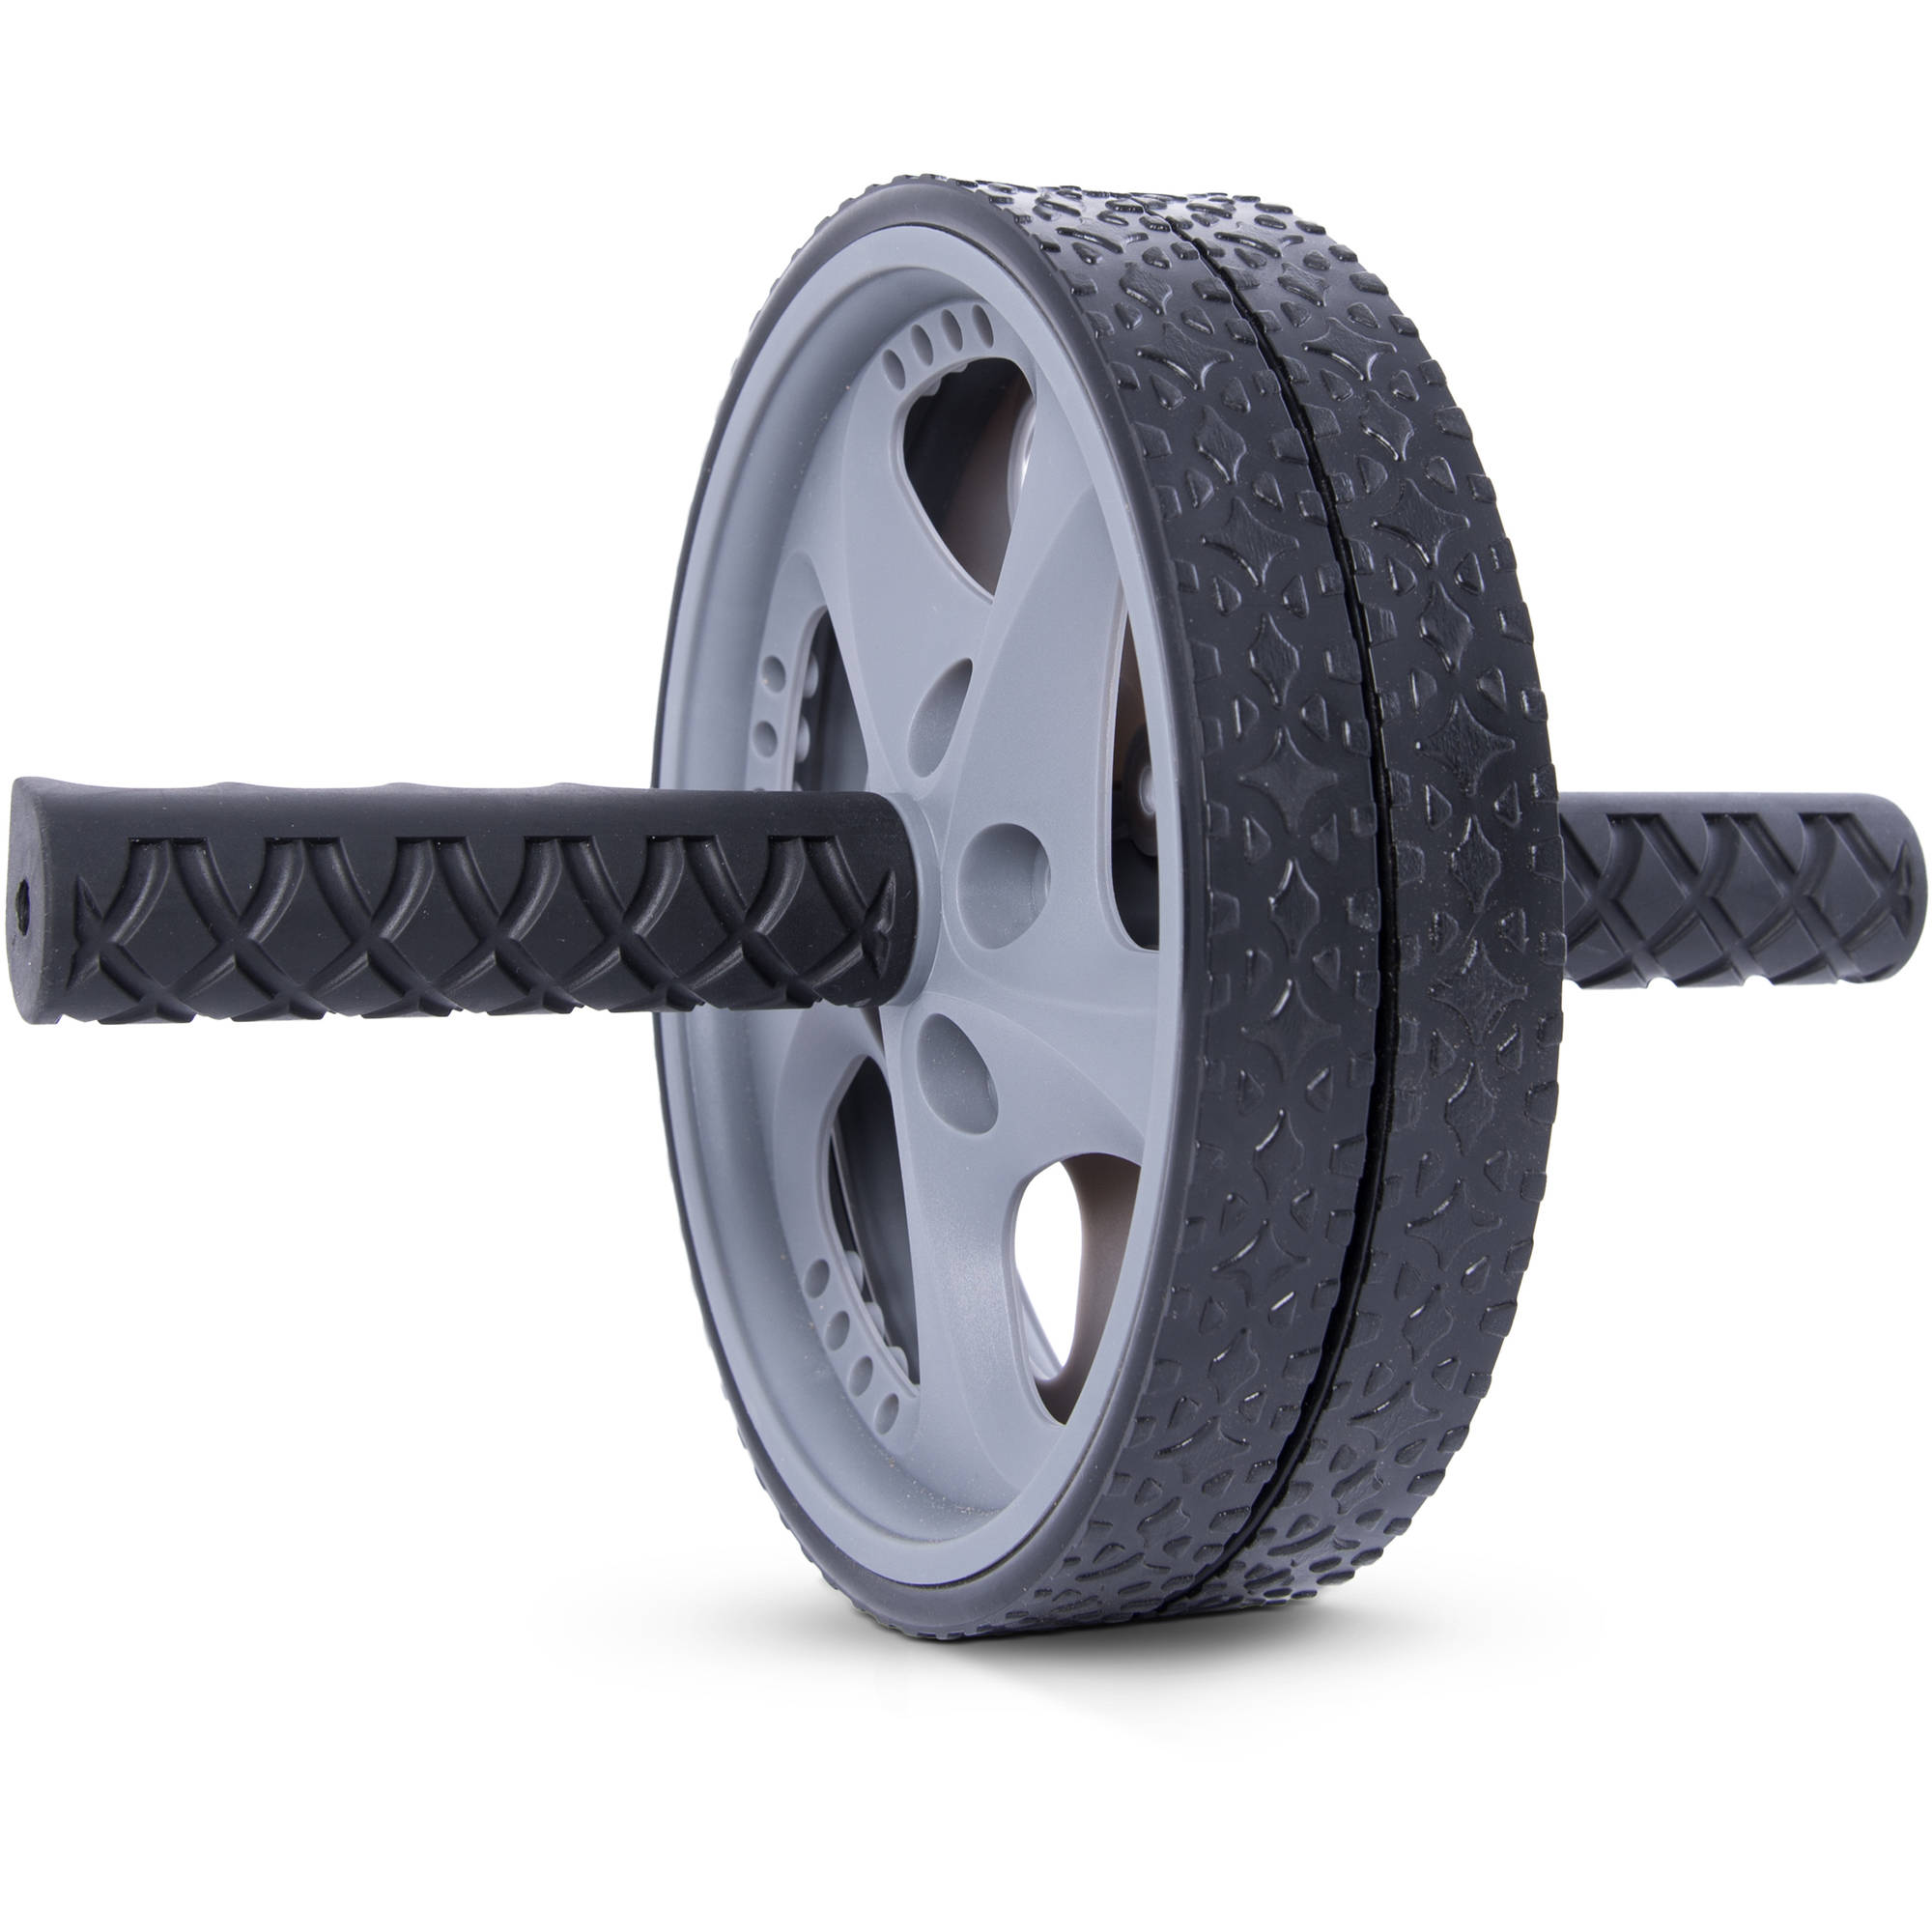 CAP Abdominal Toning Wheel